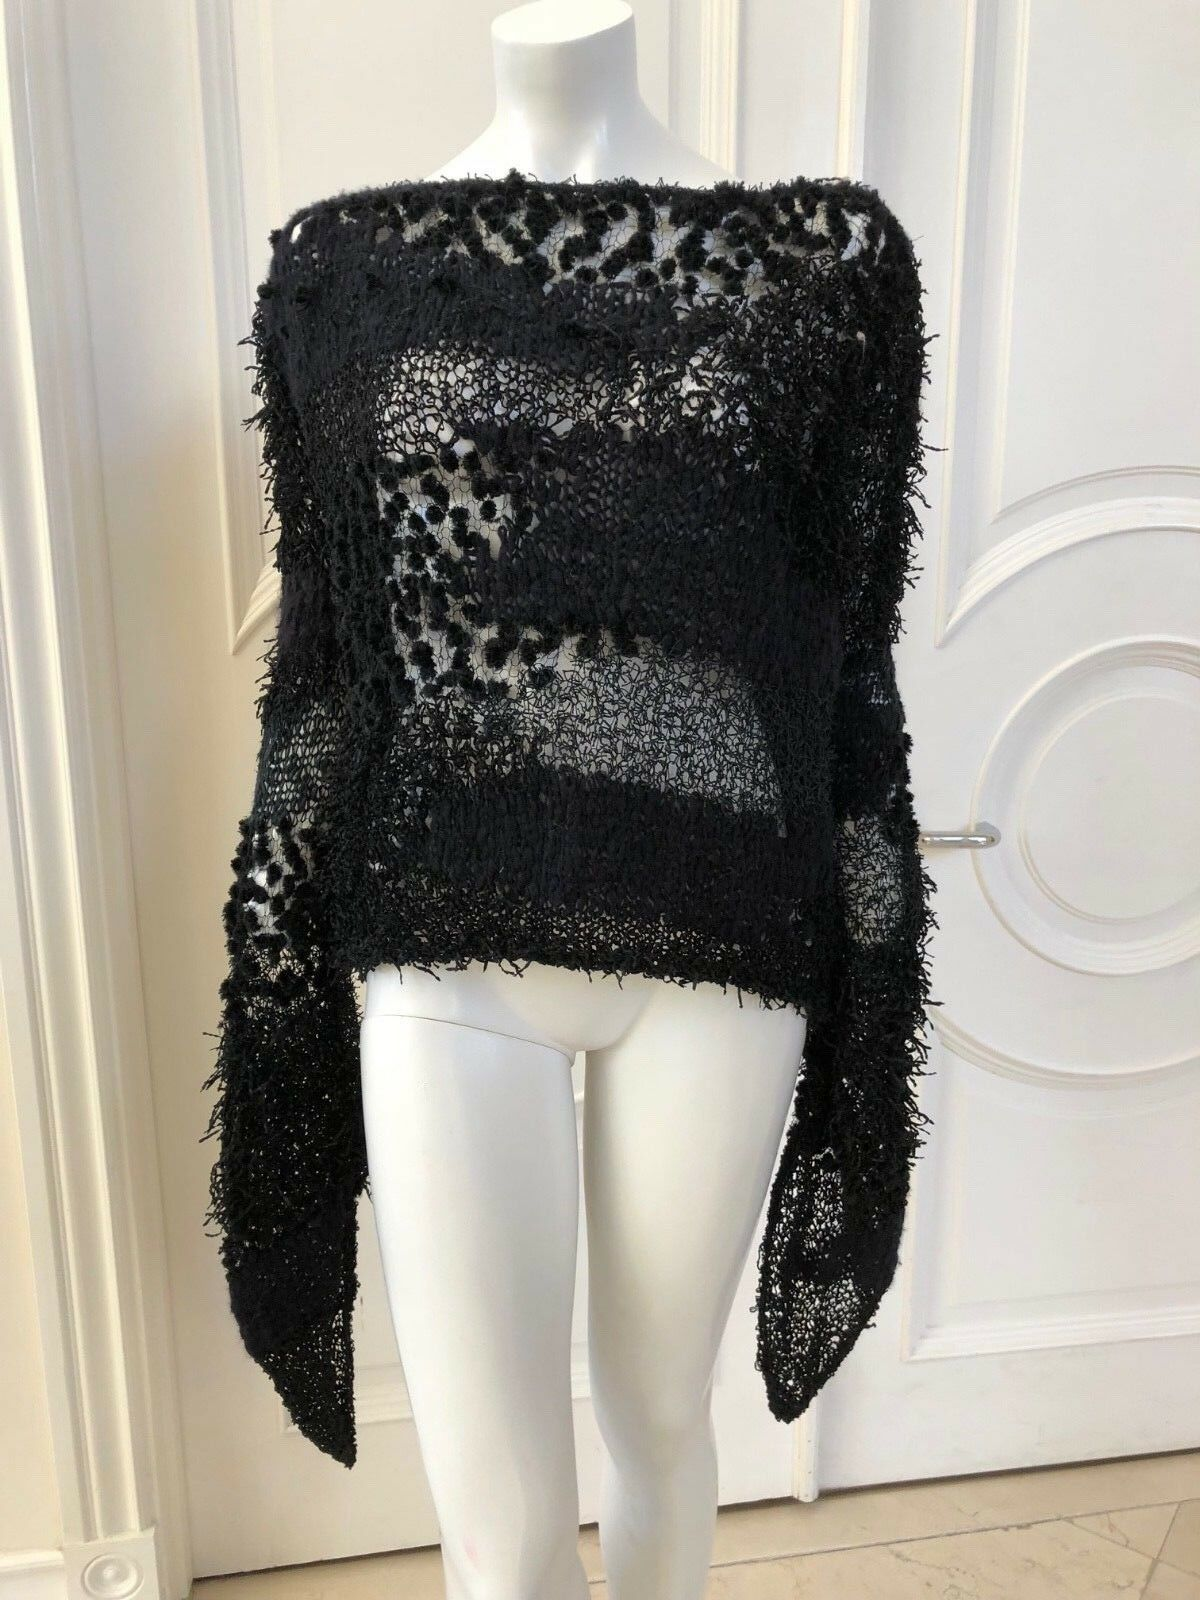 Frank Tell Sweater Hand Knit Sz M L Worn 1 Time  Retails for  900  GREAT BUY